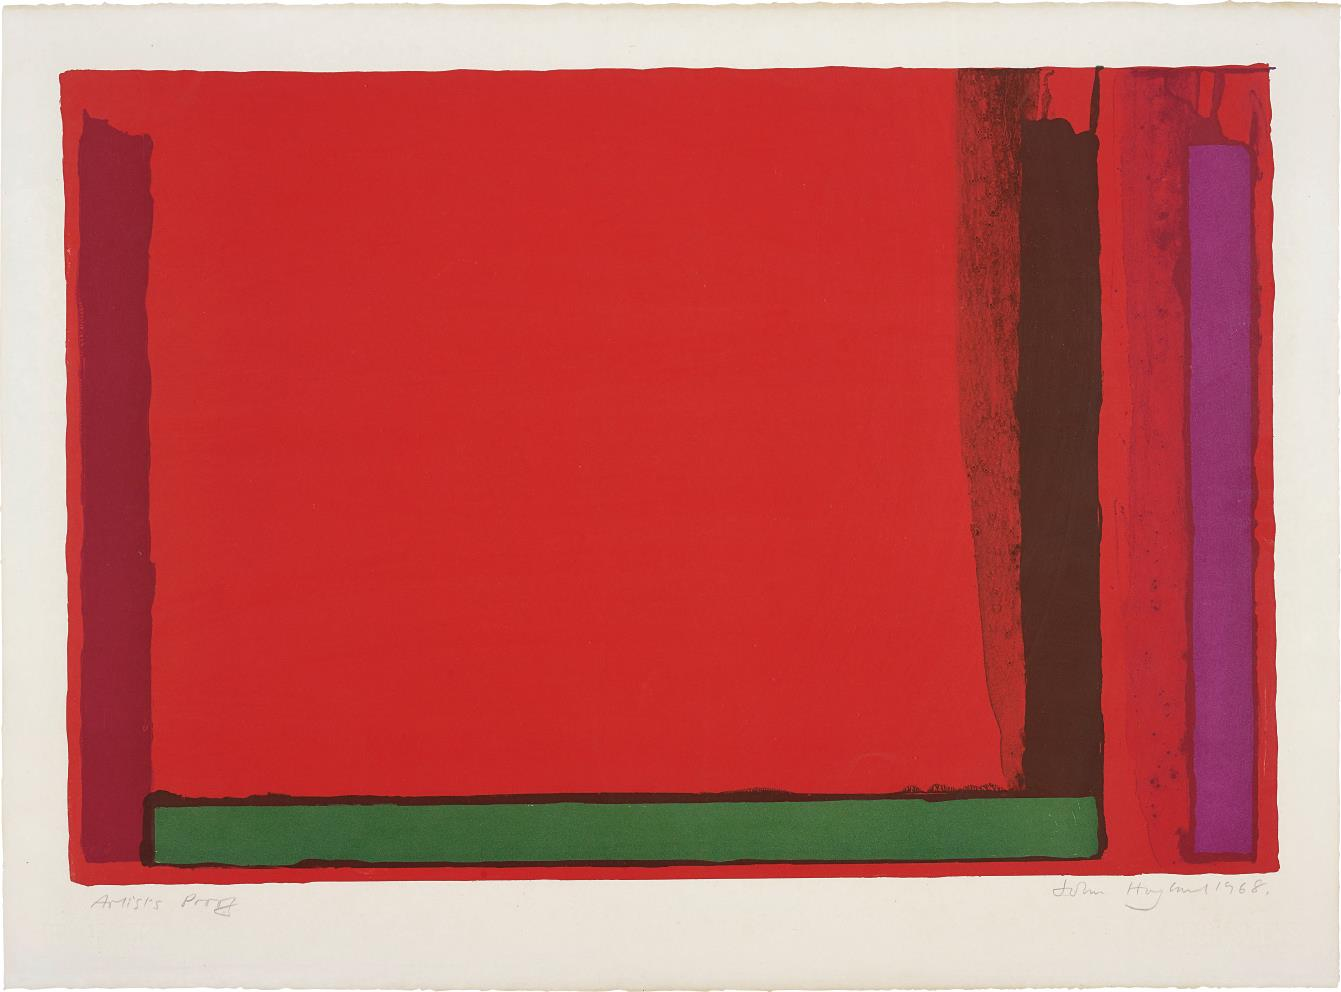 John Hoyland-Small Red-1968